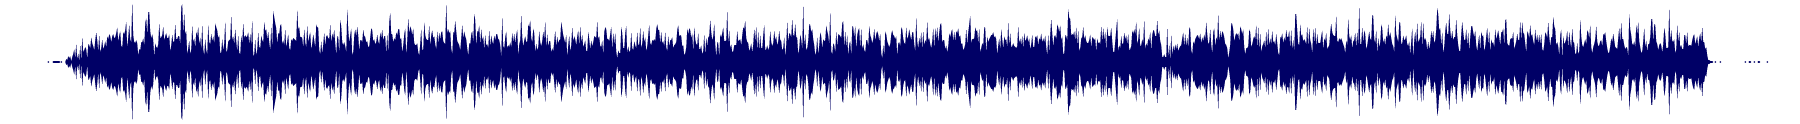 waveform of track #49551